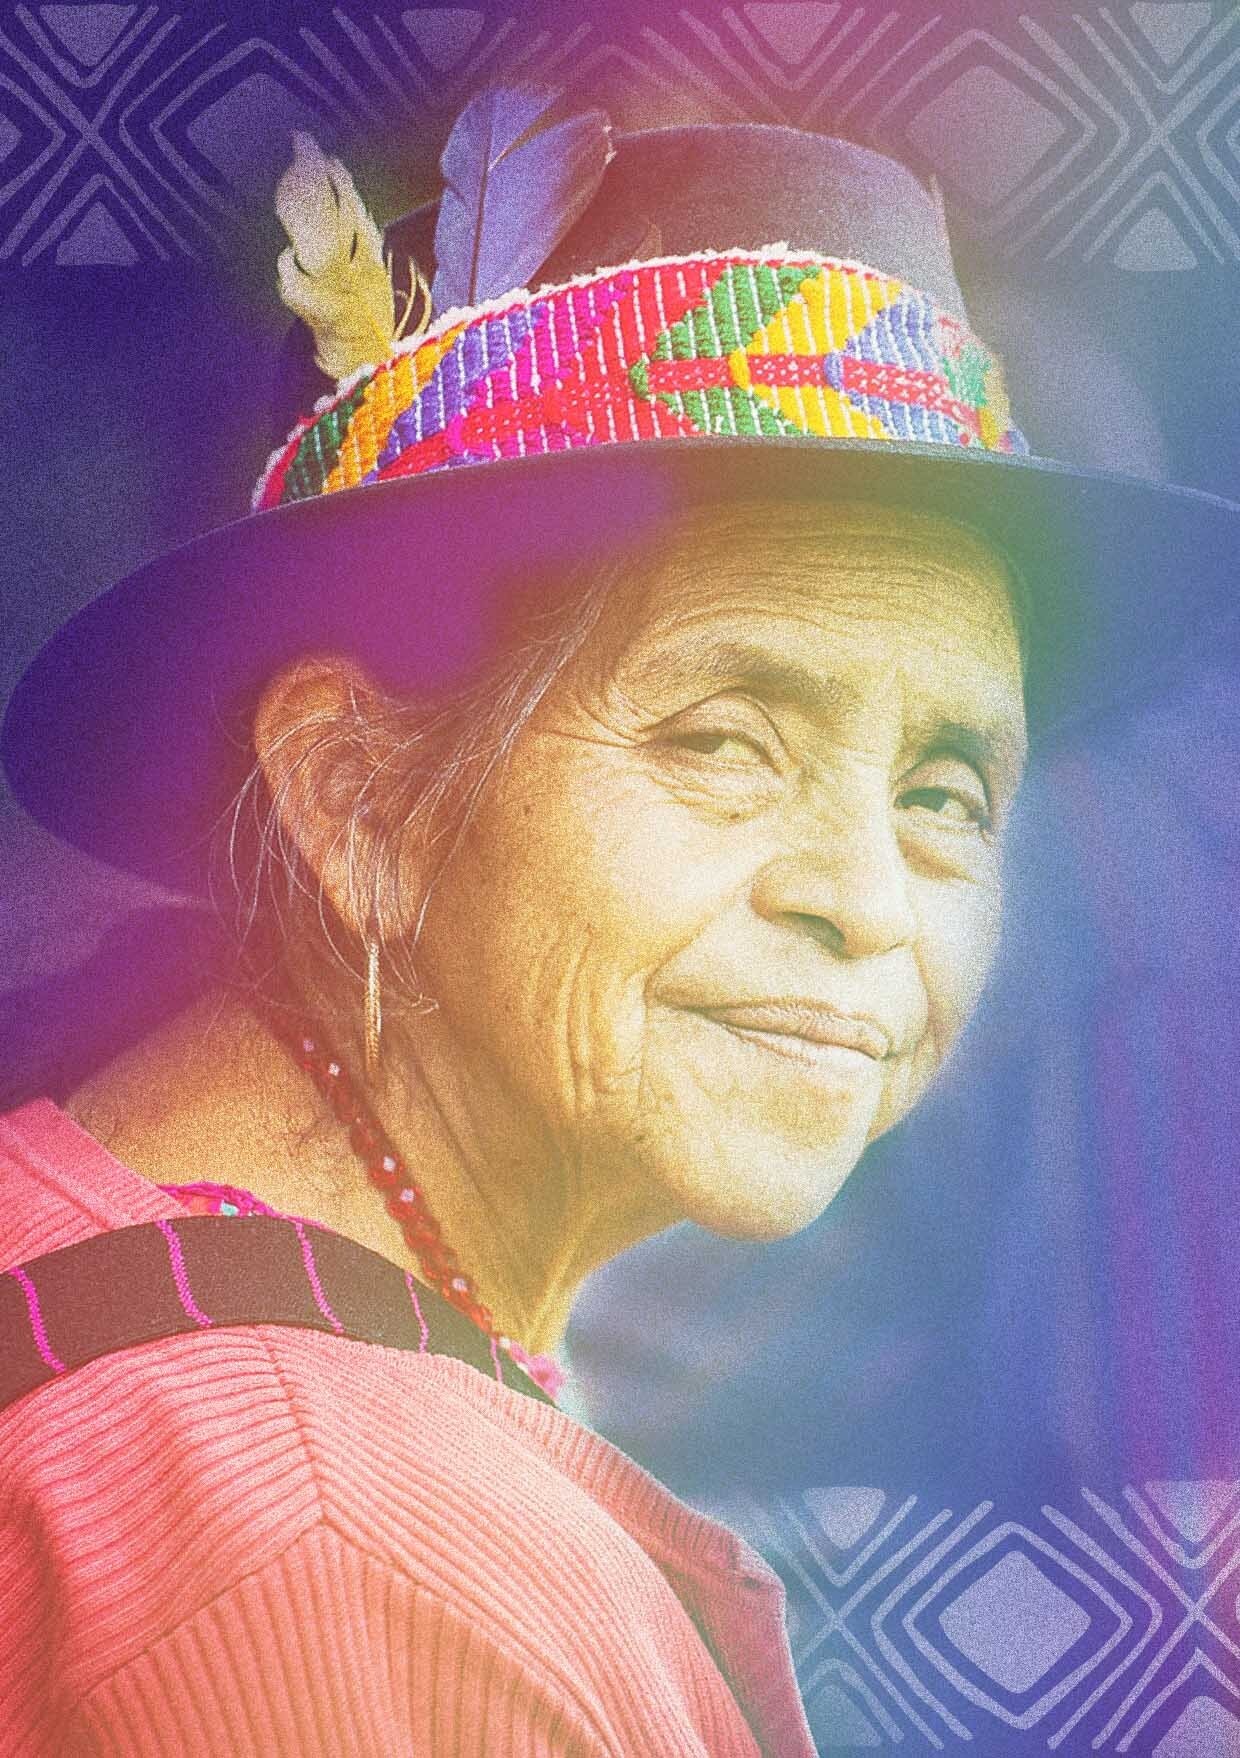 Spiritual guide and midwife, she works with the sacred fire and tobacco readings. She's been elected as part of the ancestral authorities and is responsible for maintaining the order community in Solola. - maya k'iche, guatamalaNana Rosalia Zavala